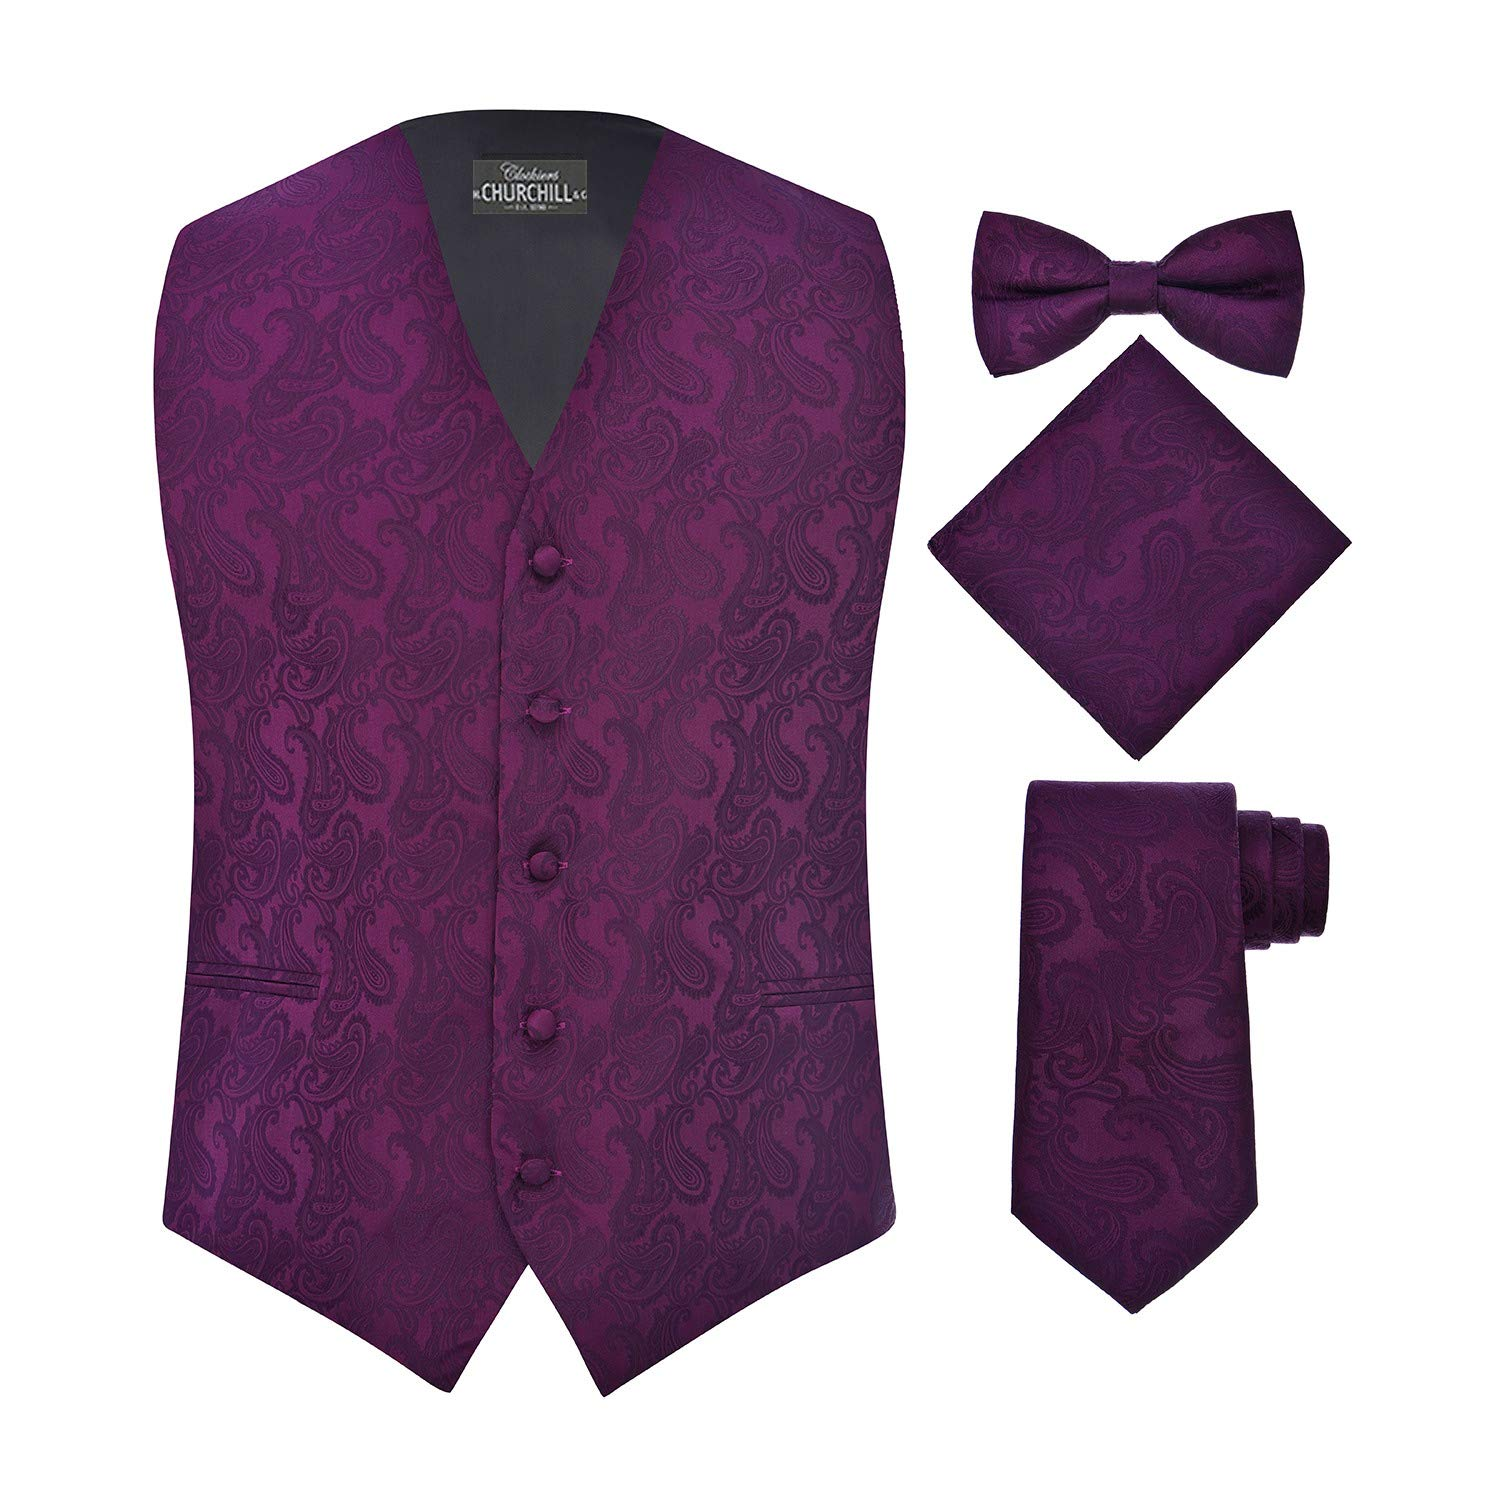 S.H. Churchill & Co. Men's 4 Piece Paisley Vest Set, with Bow Tie, Neck Tie & Pocket Hanky - XL, Purple by S.H. Churchill & Co.